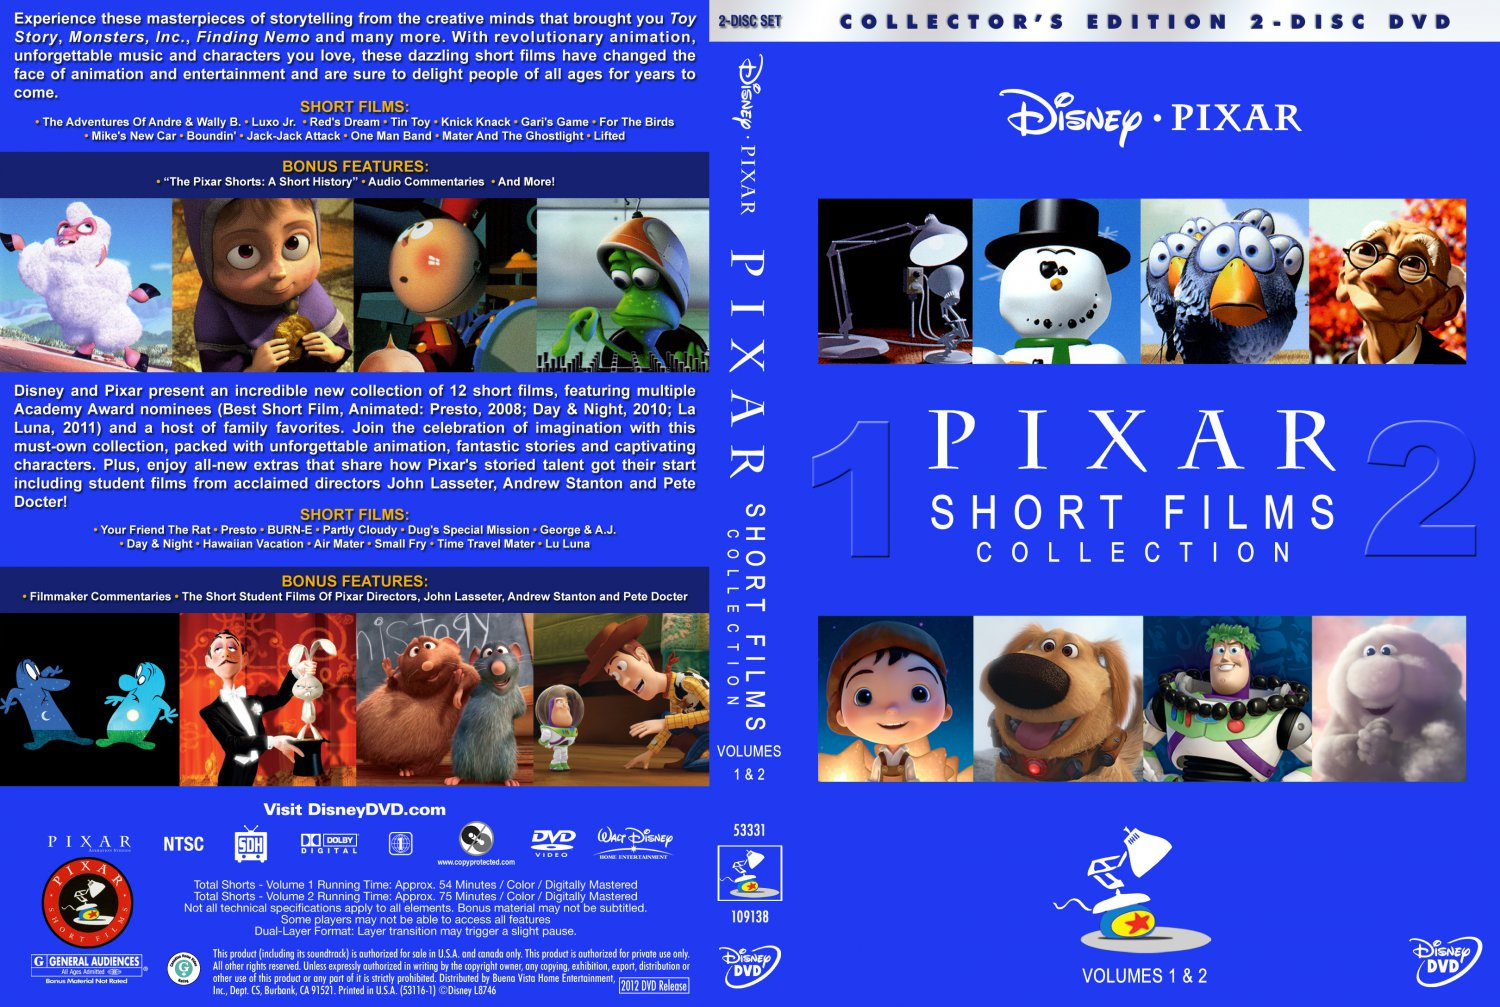 pixar short films collection 2 dvdr : money in the bank 2014 online